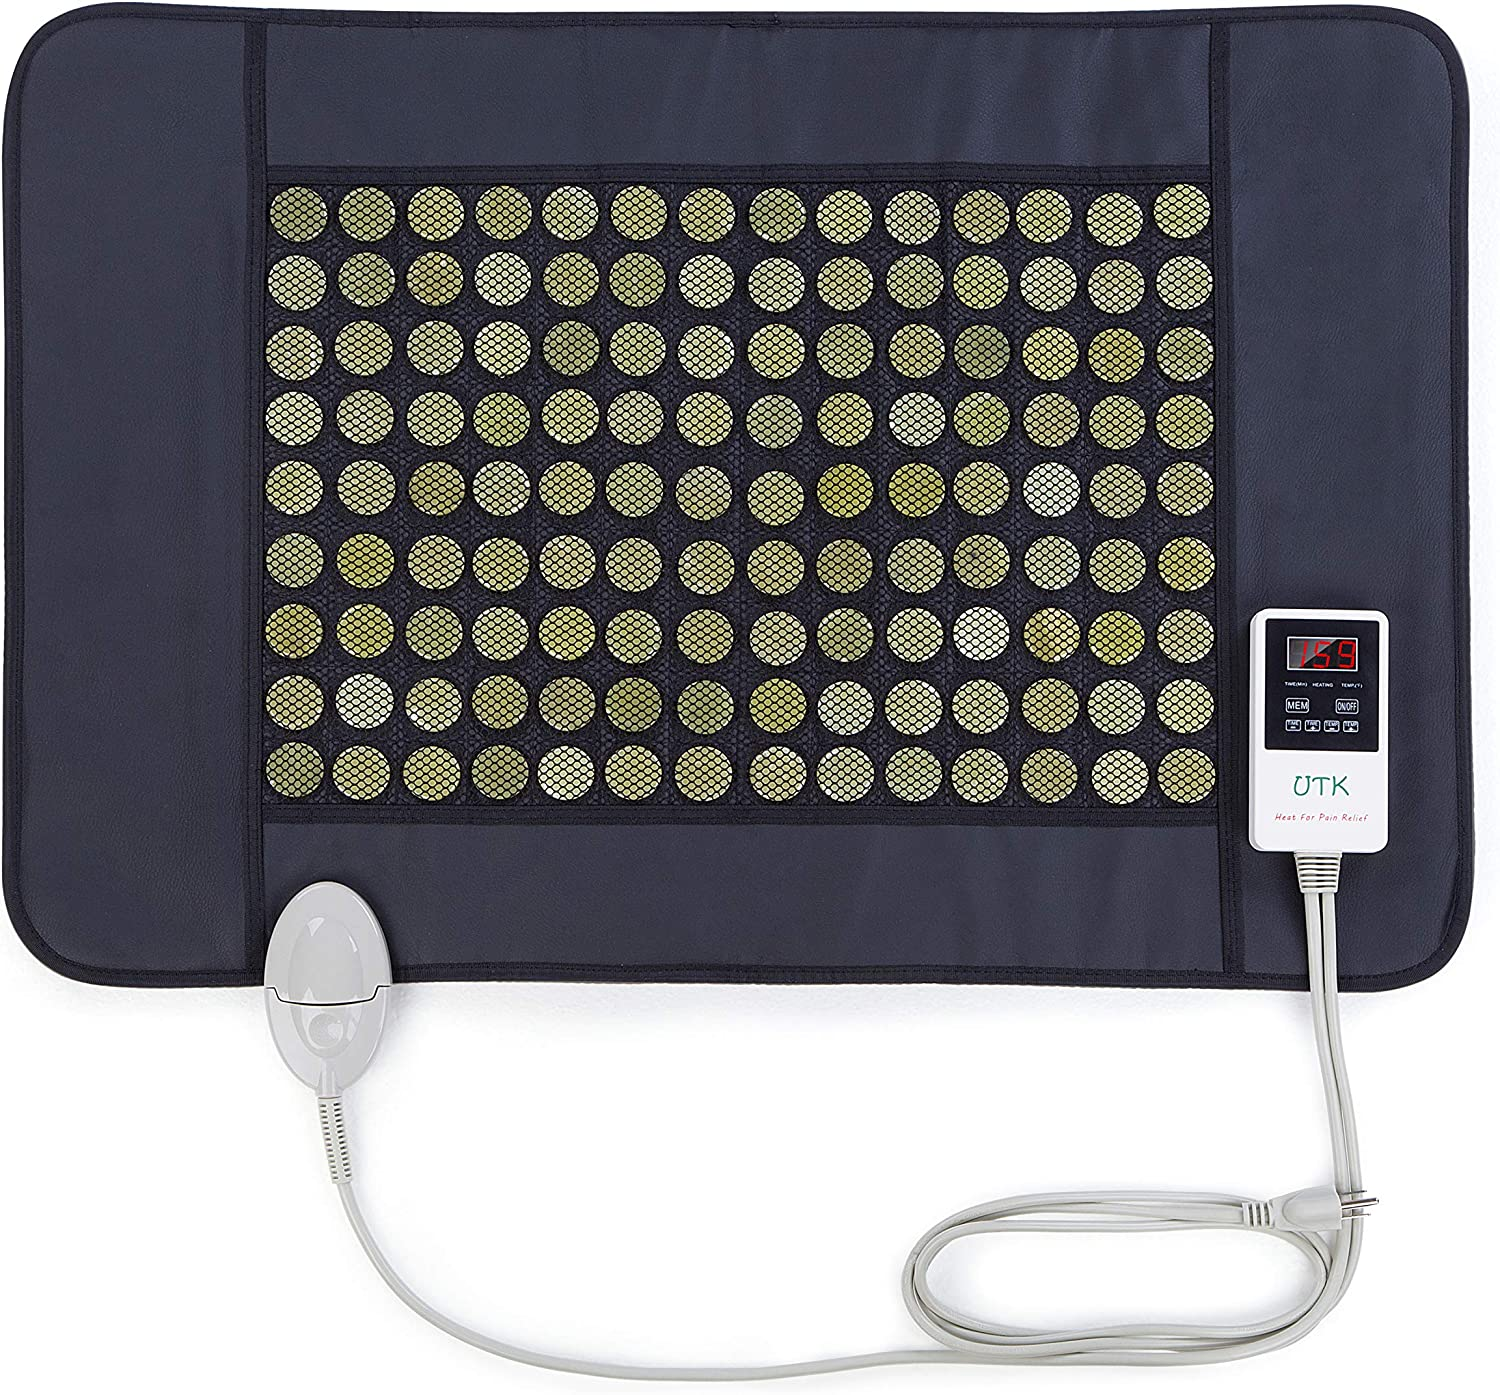 "UTK Jade Far Infrared Heating Pad for Back Pain and Cramps Relief, Infrared Hot Therapy for Sciatica, Arthritis - Medium [21""x31""], 126 Jade Stones, Adjustable Temp, Auto Off and Travel Bag"